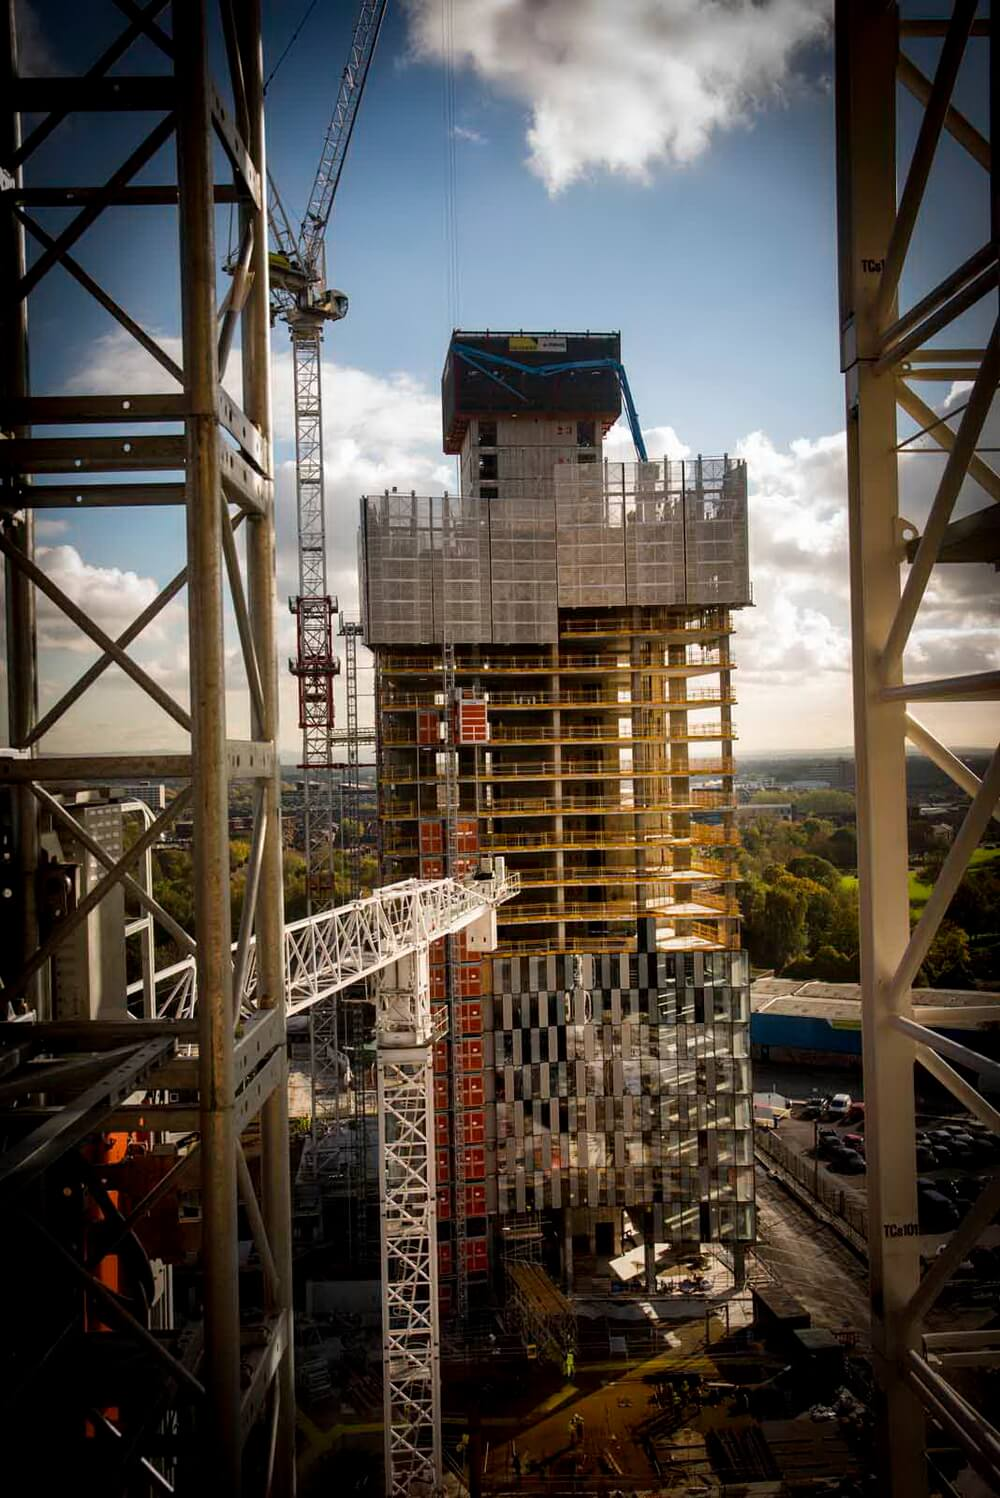 Way up on the 22nd floor - High view of tall construction - Manchester